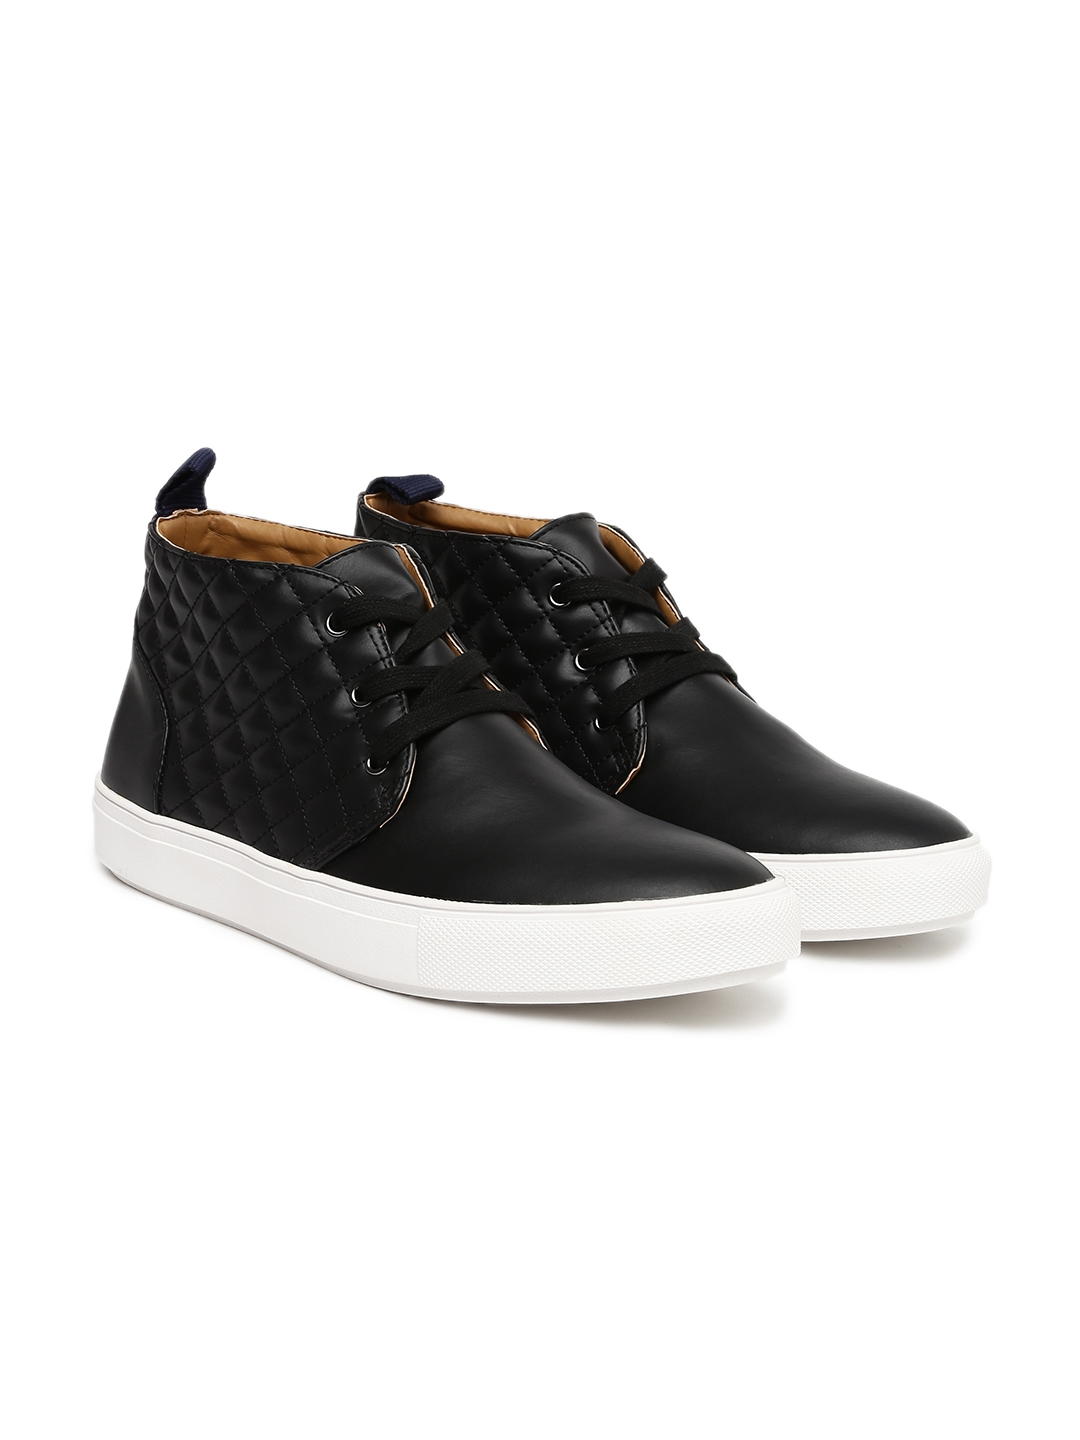 e837991f8d7 Steve Madden Men Black Quilted Mid-Top Sneakers